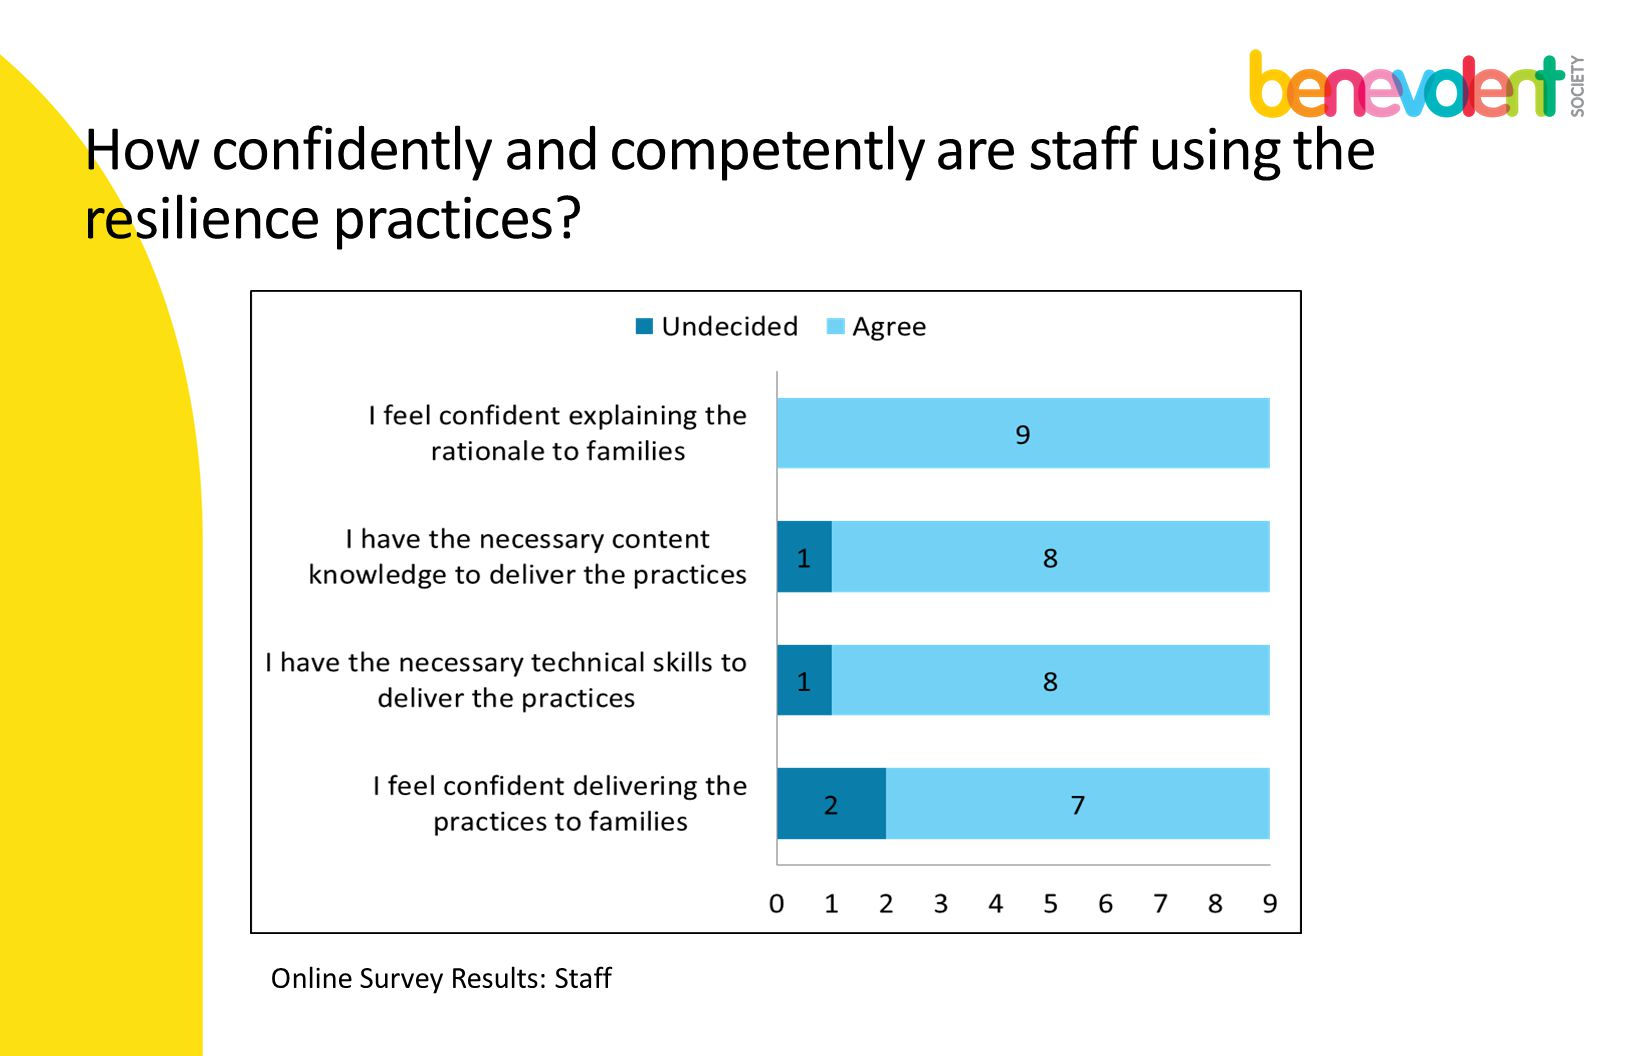 How confidently and competently are staff using the resilience practices